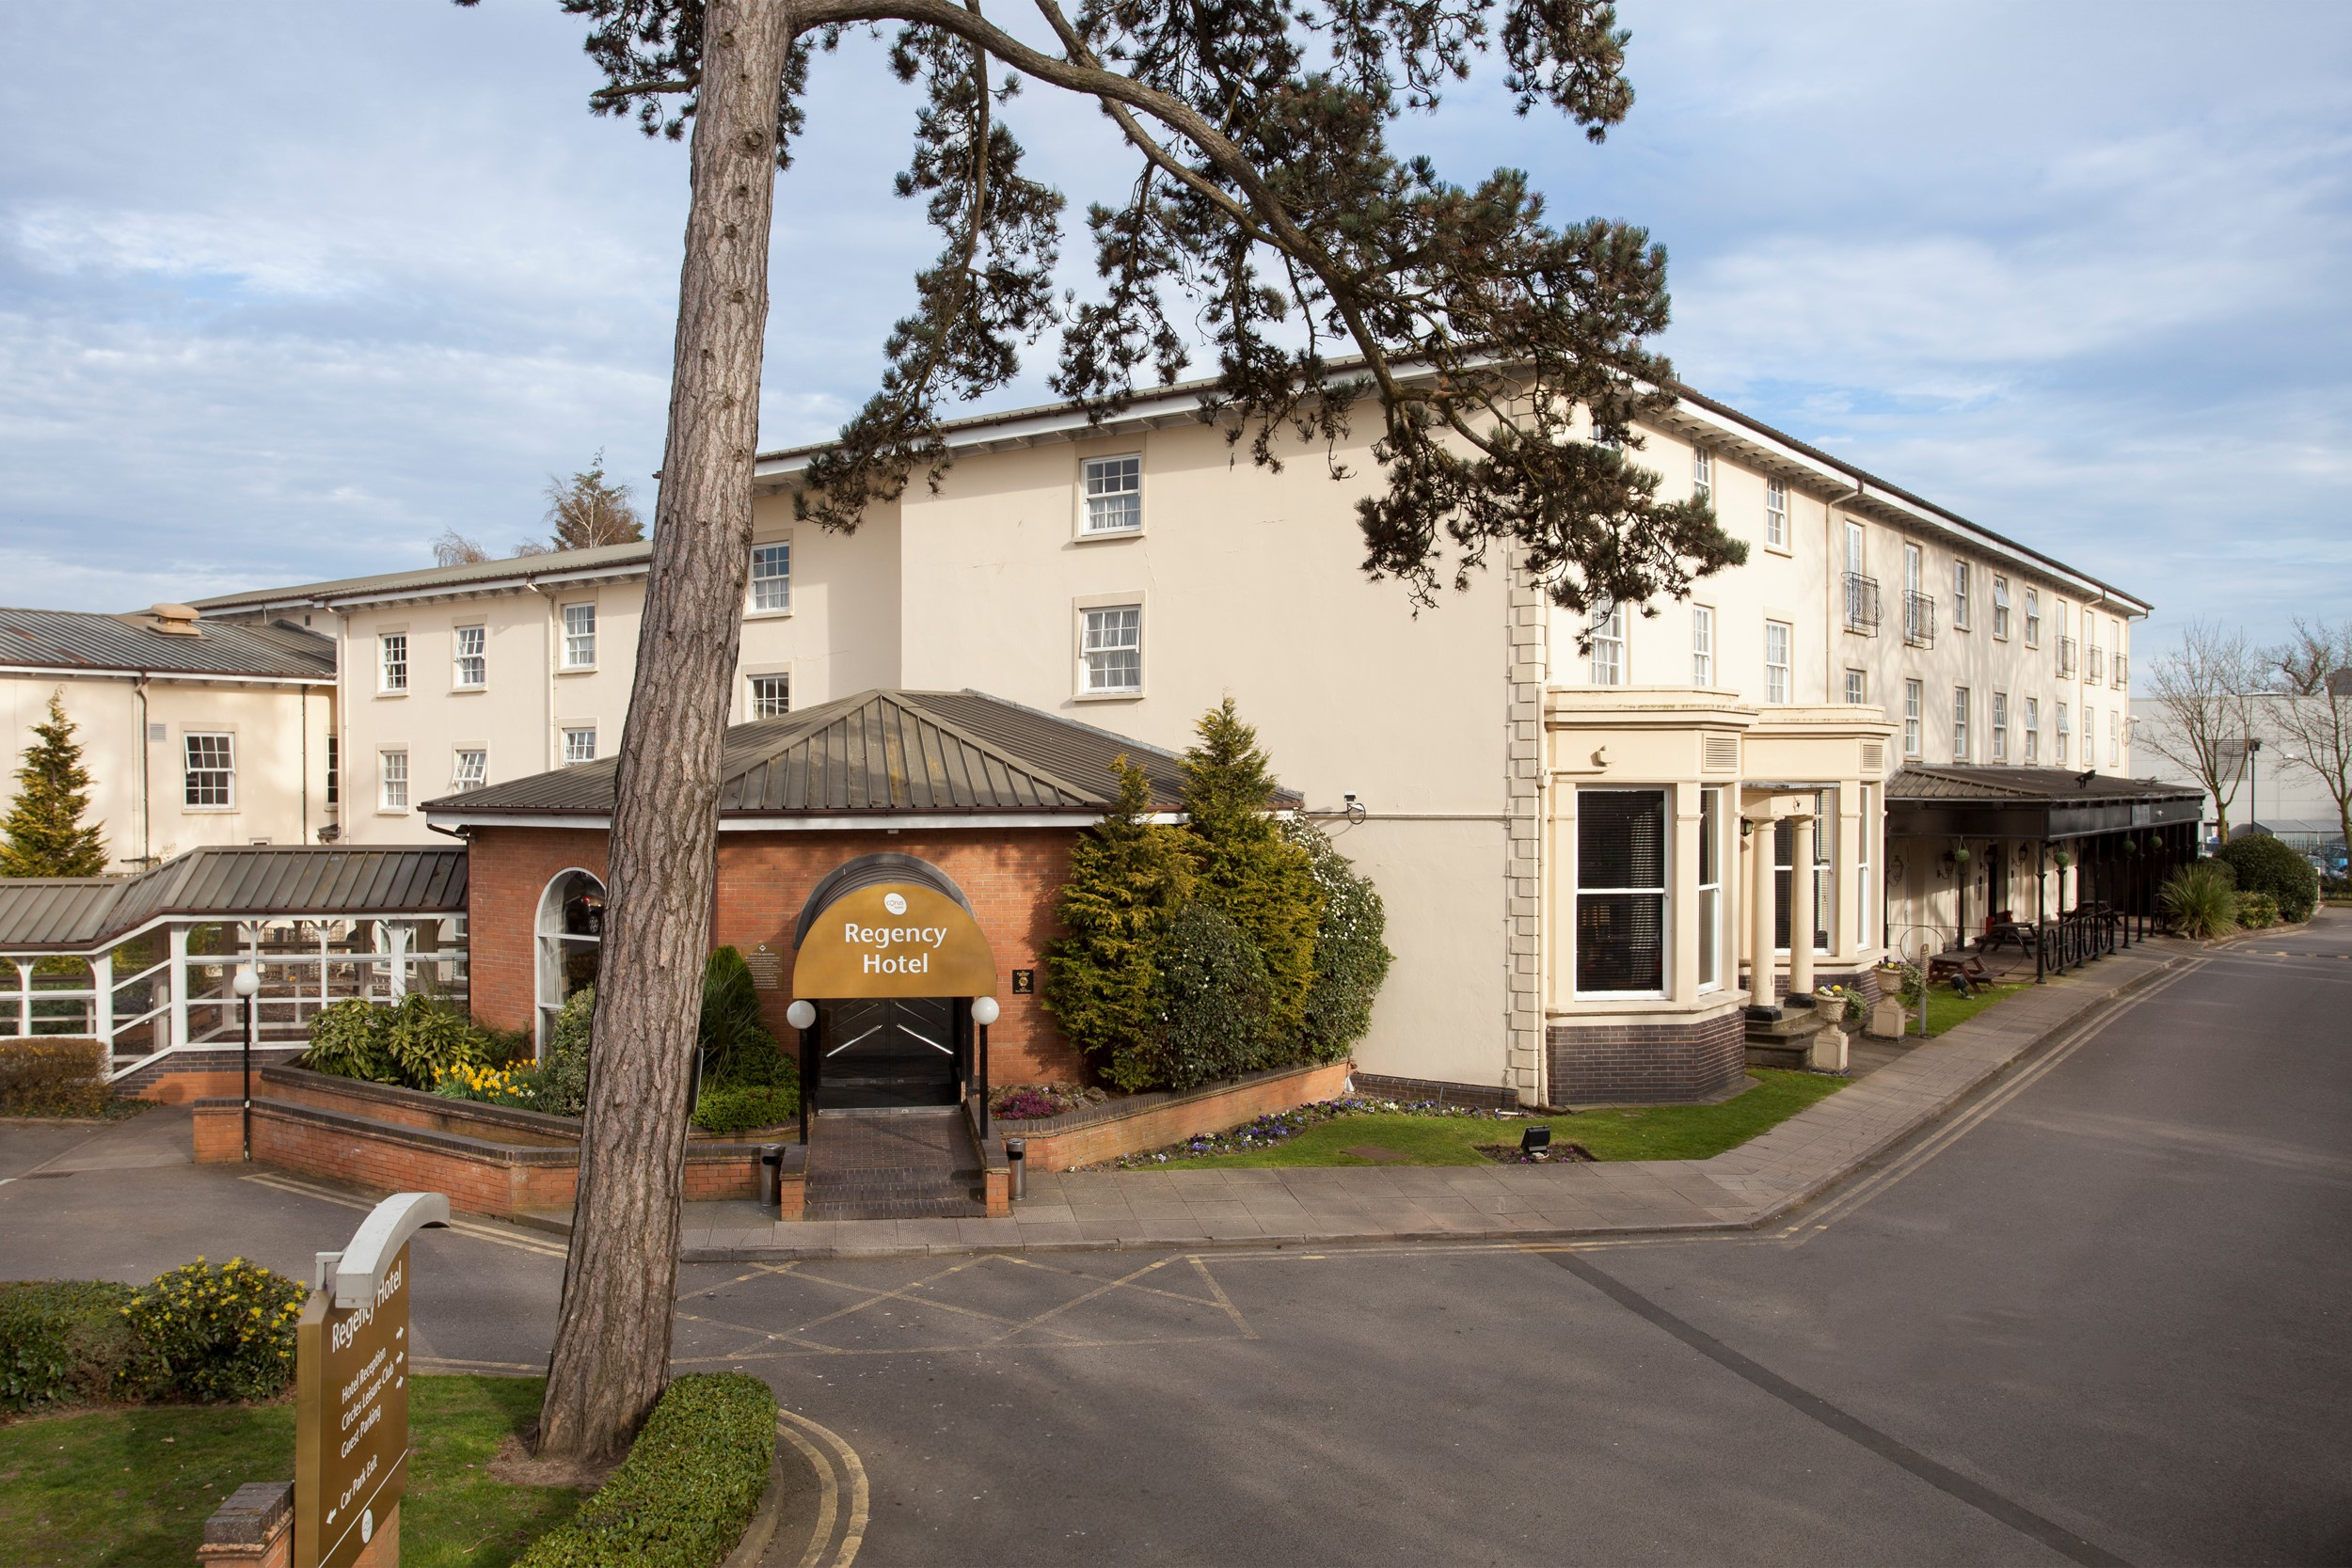 Regency Hotel Solihull